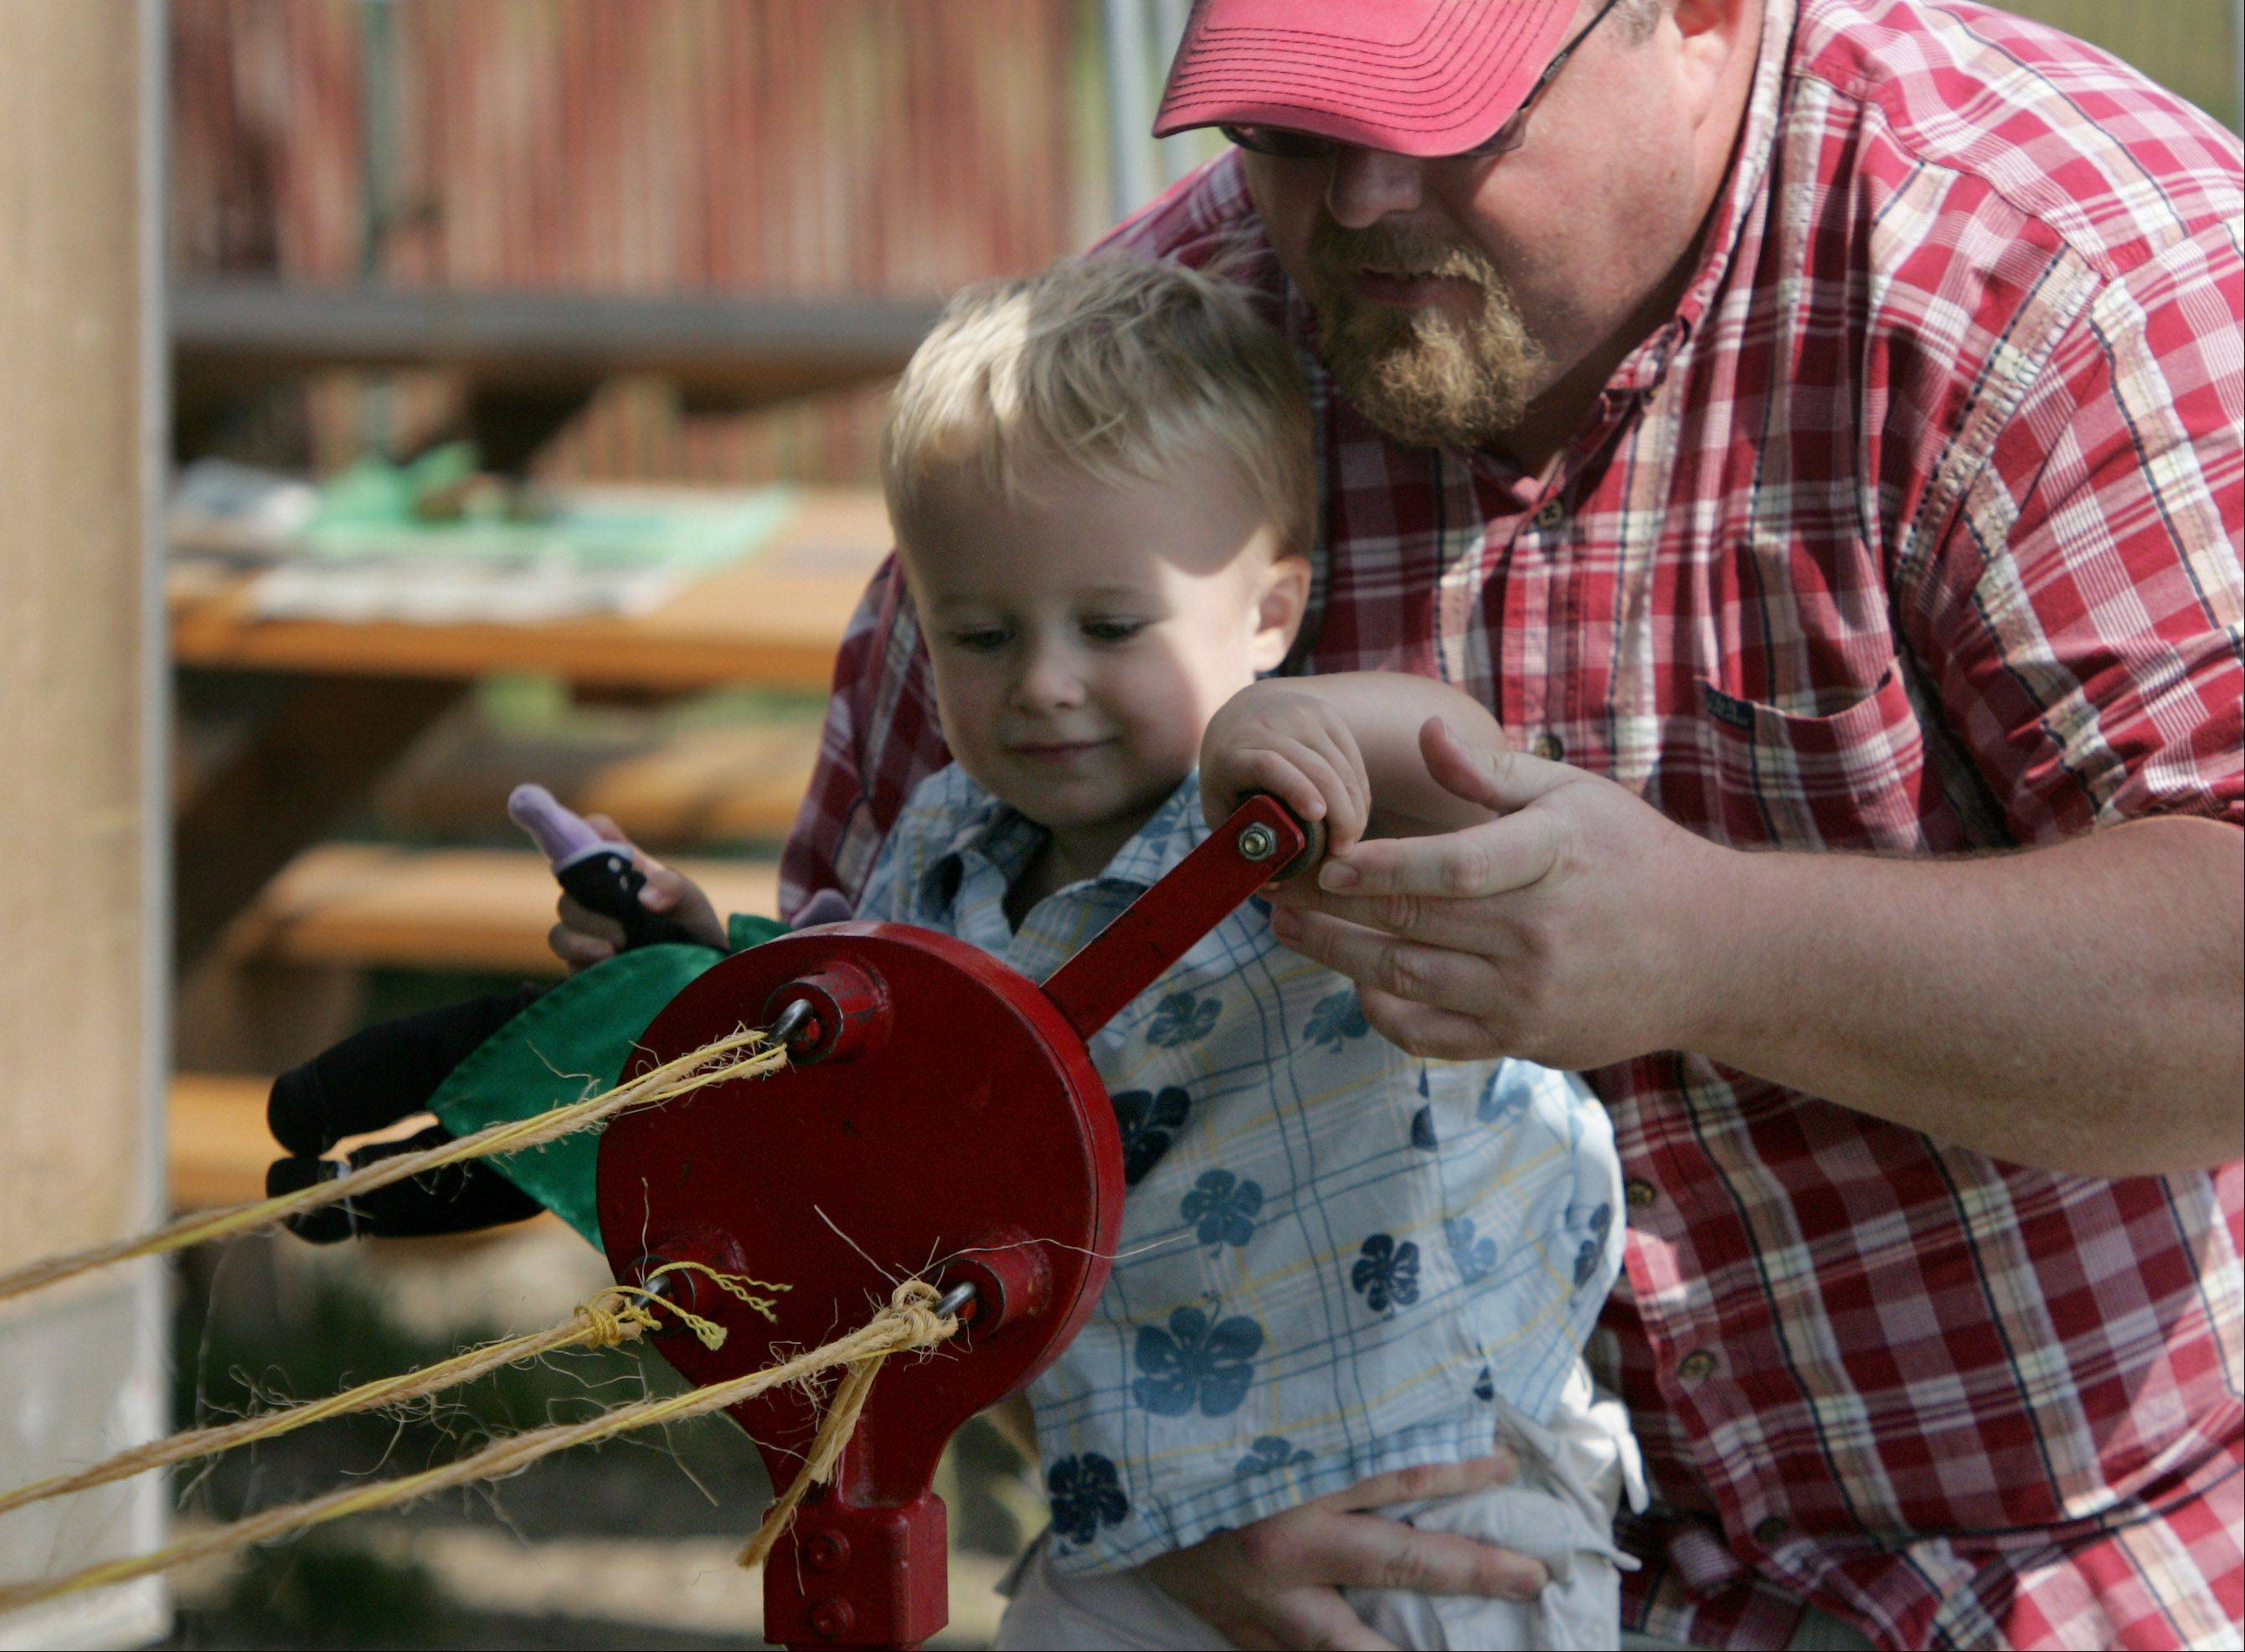 David Martin, of McHenry, holds his son, Isaac, 2, as they spin rope during last day of the 84th Annual Lake County Fair Sunday in Grayslake.